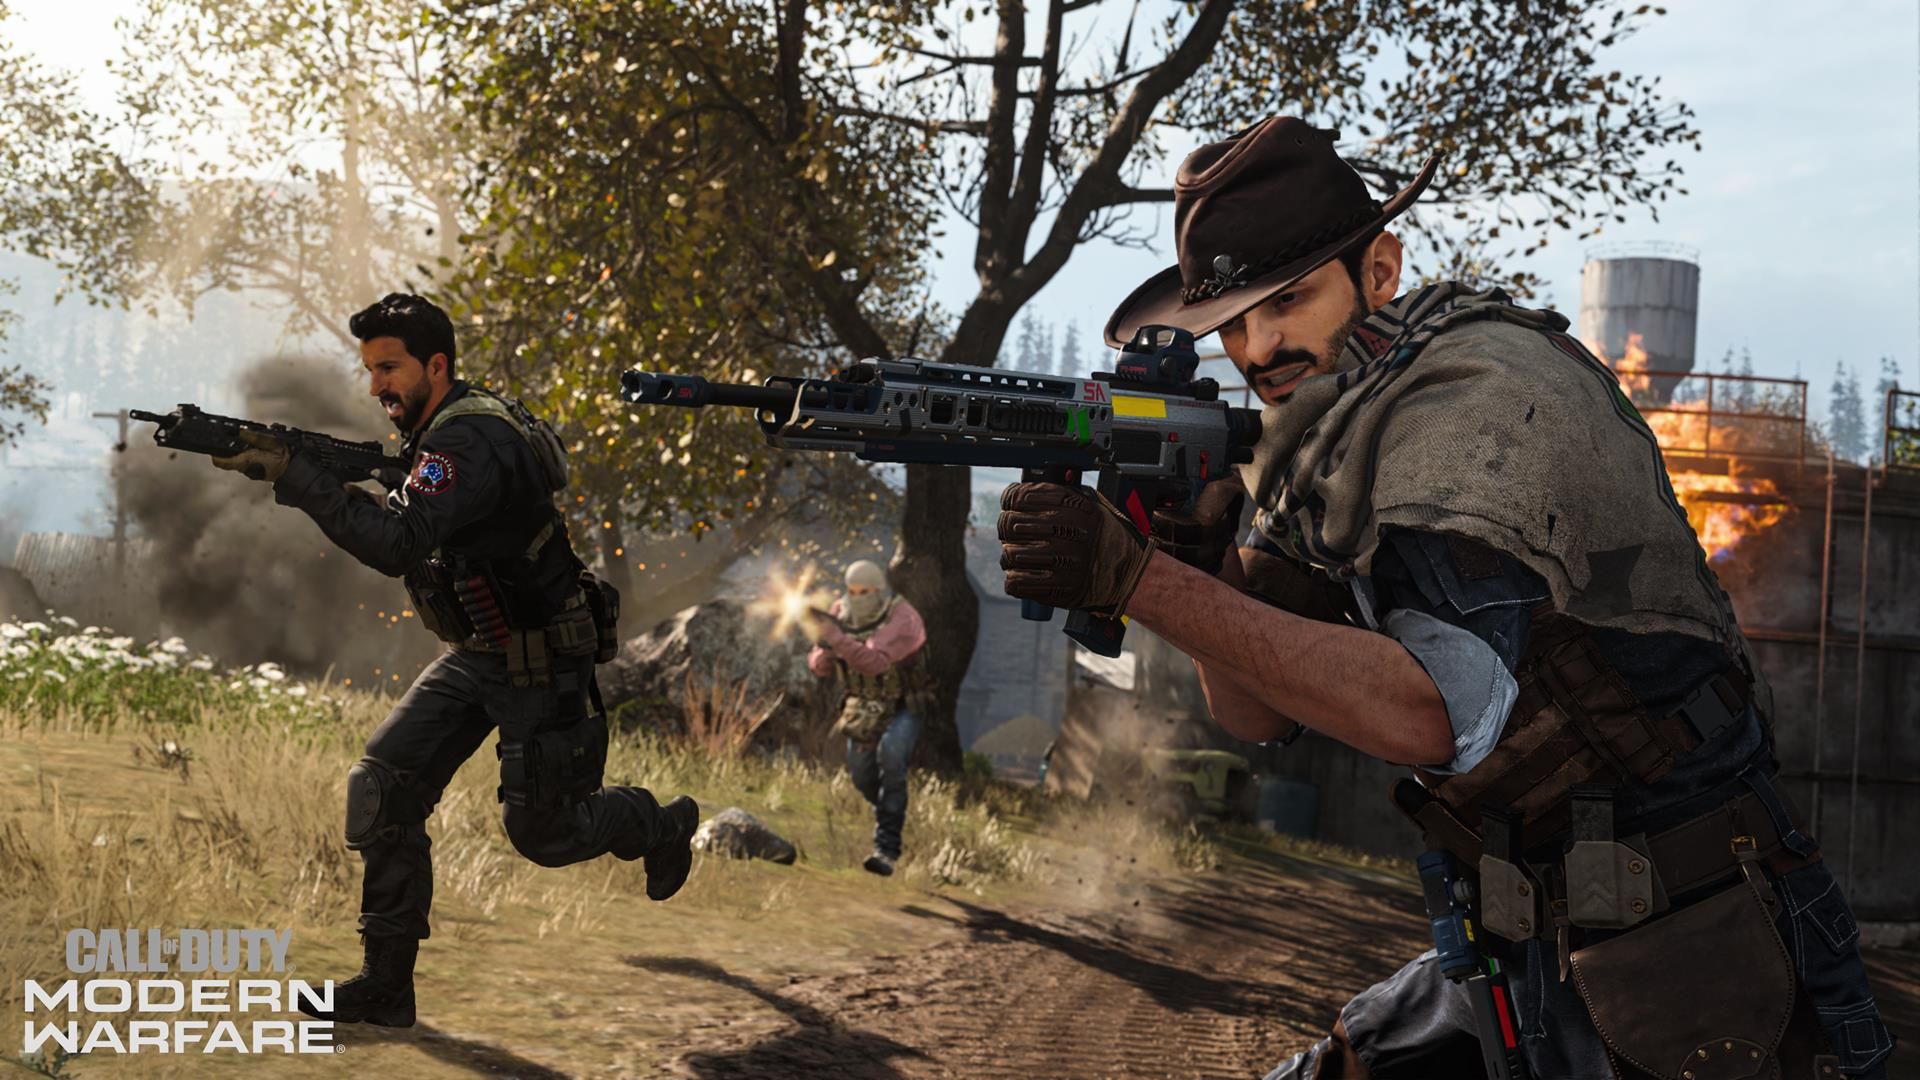 Call of Duty: Warzone Mobile is in development at